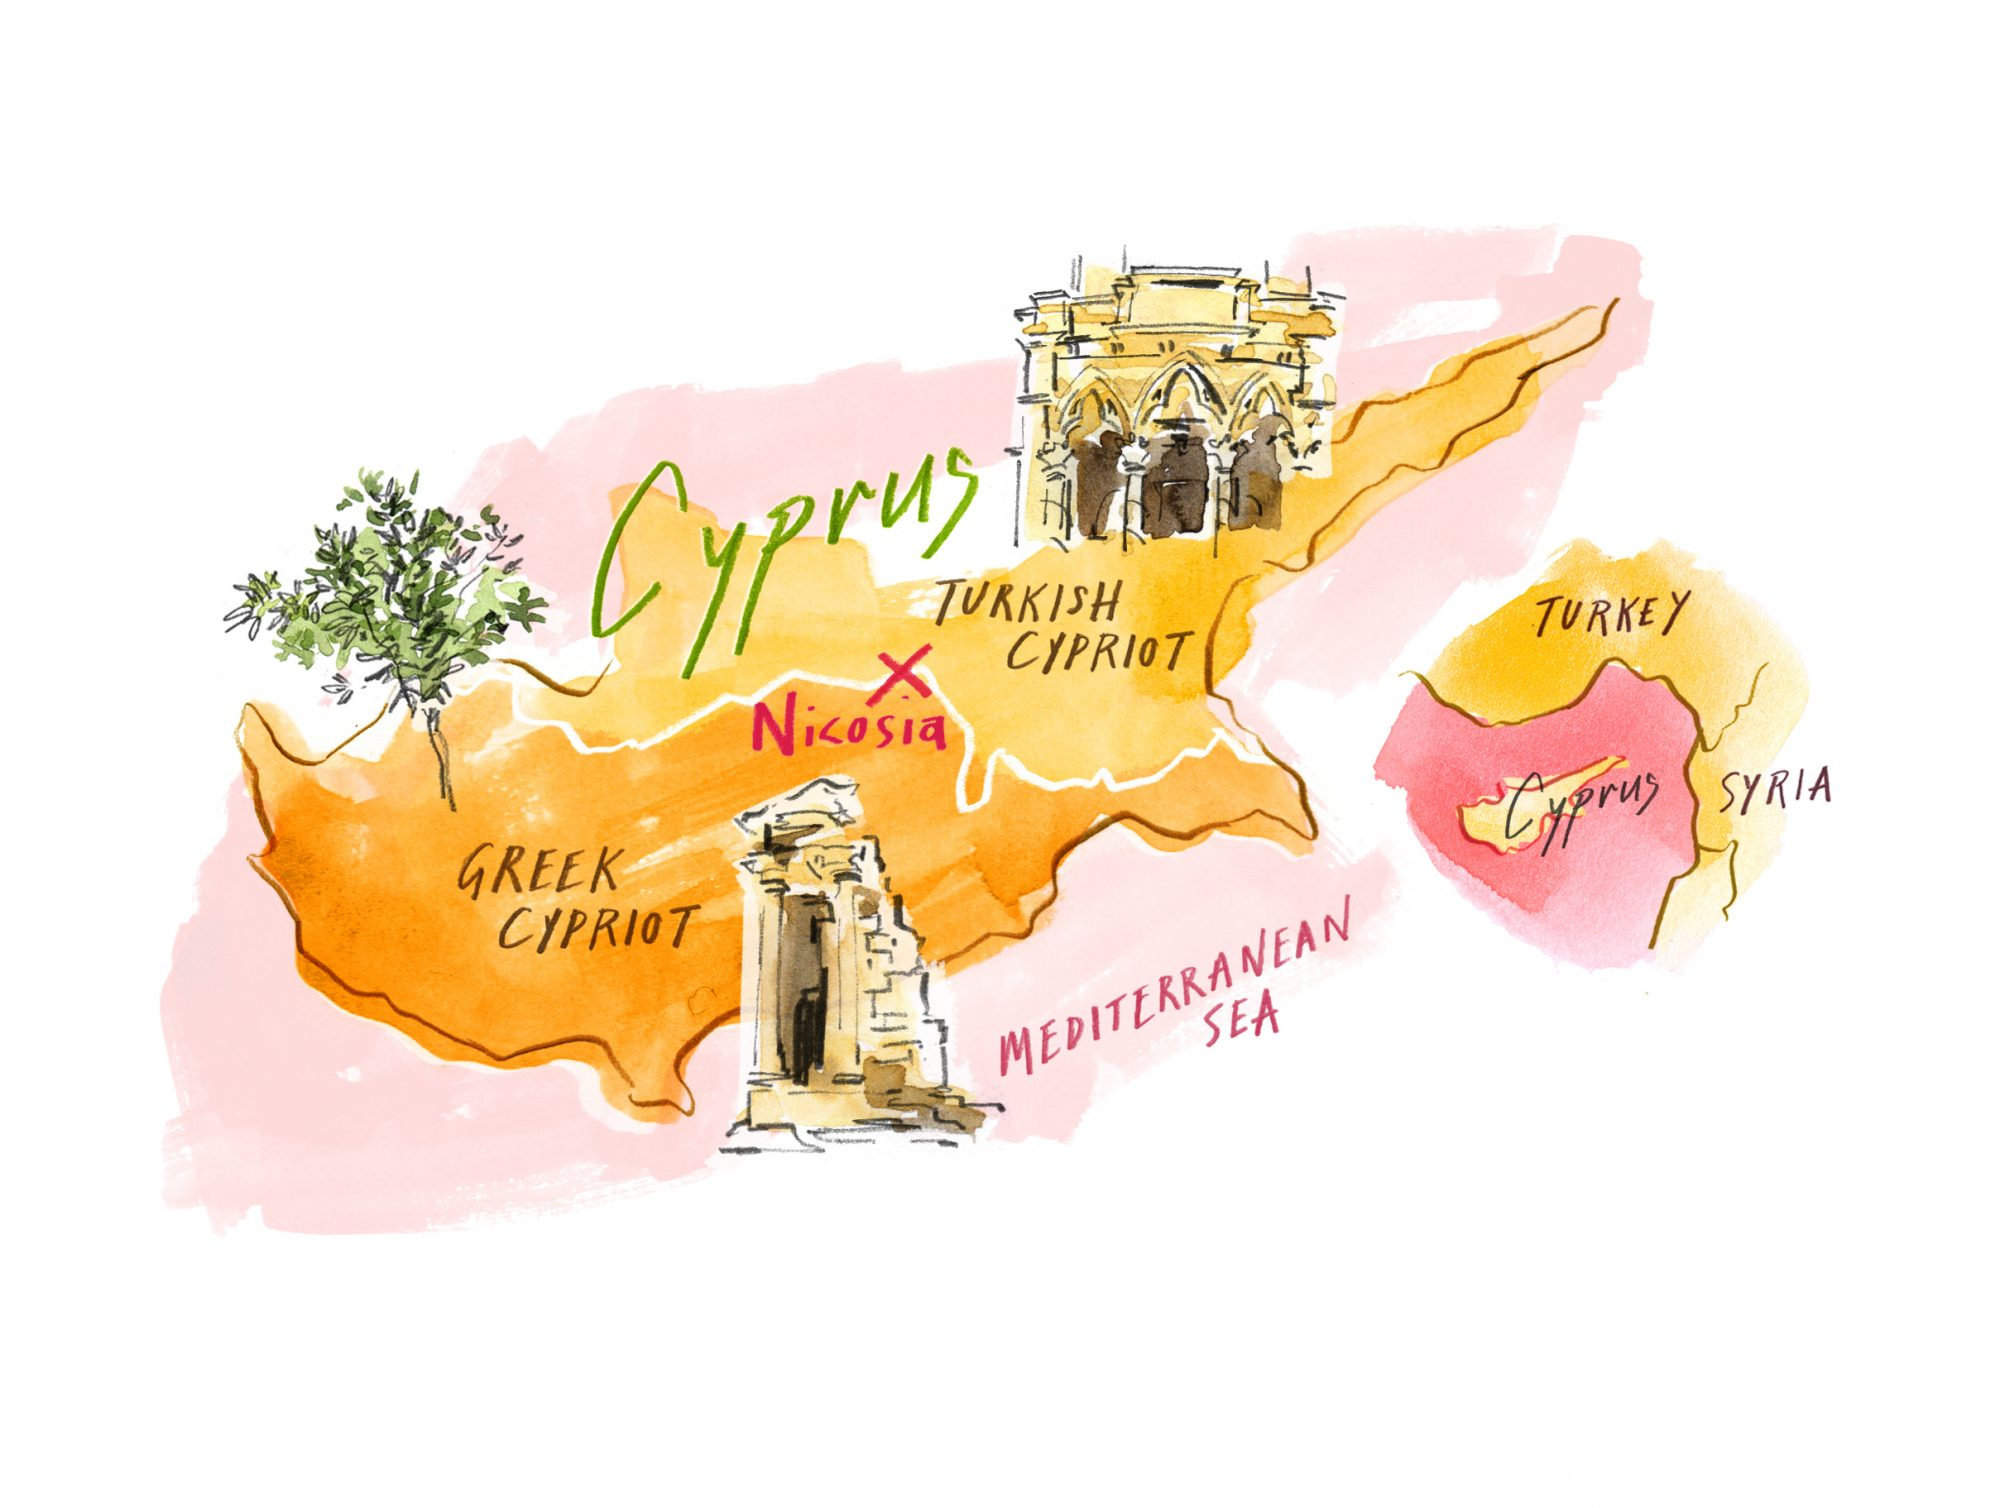 An illstration of Cyprus